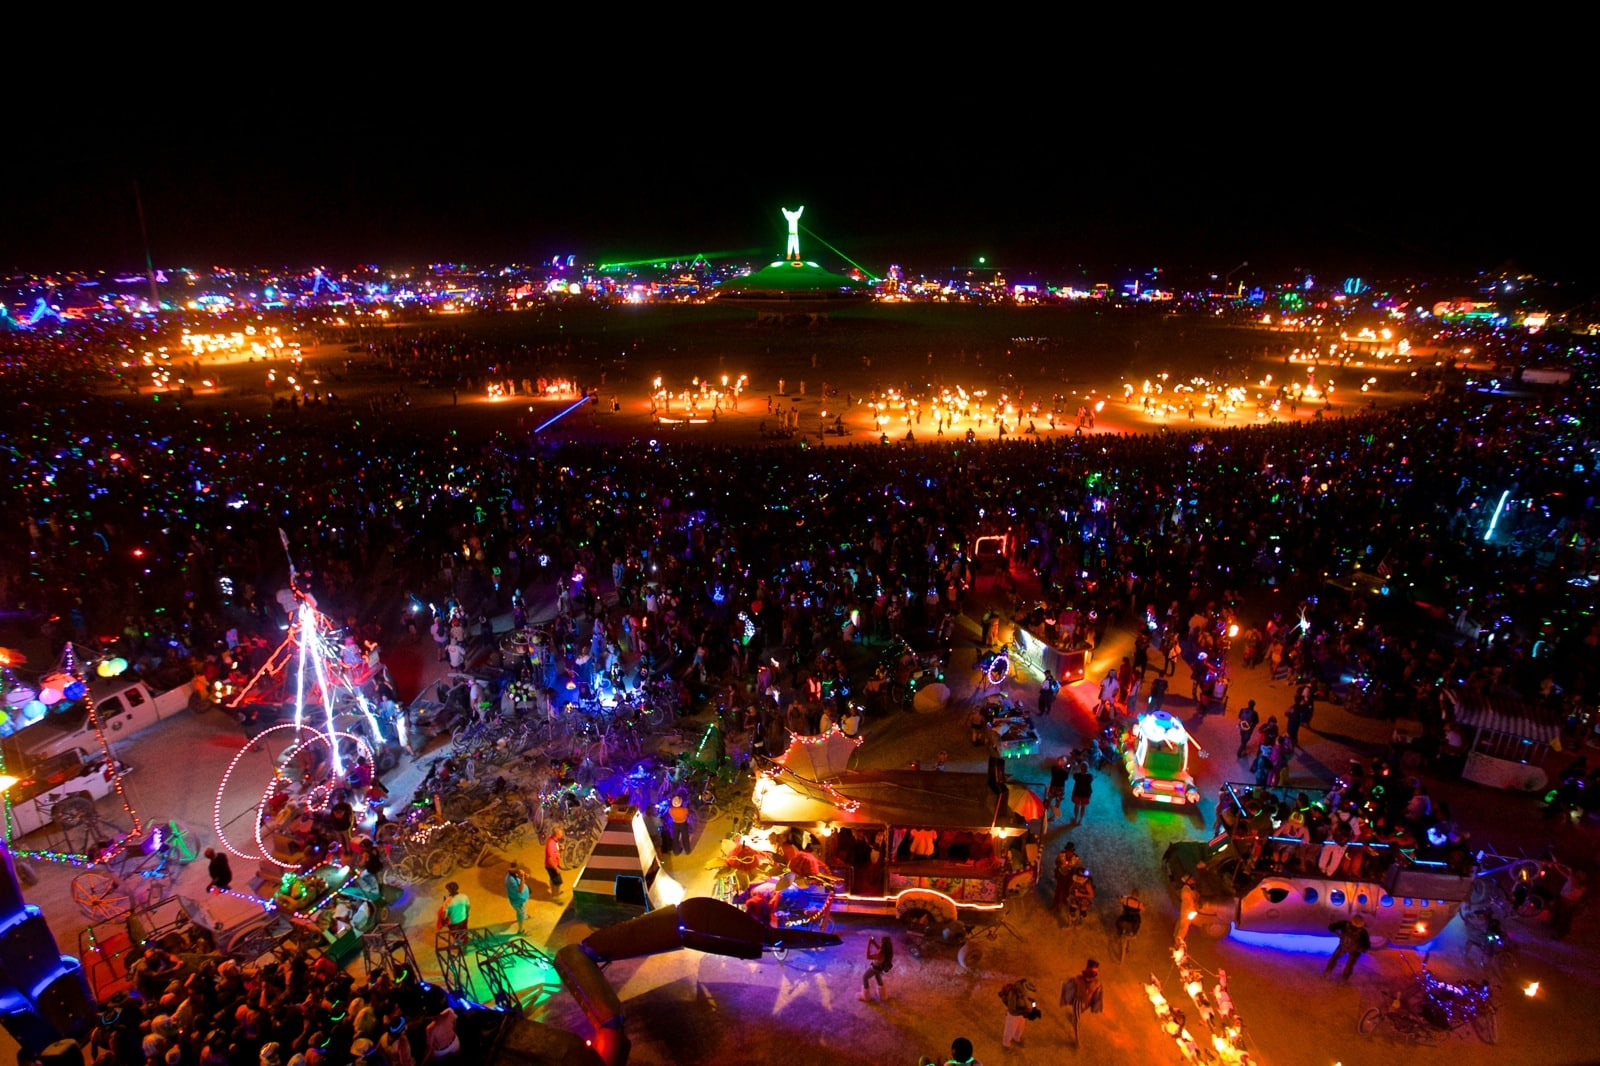 Burning_Man_2013_Sidney_Erthal%20-%203